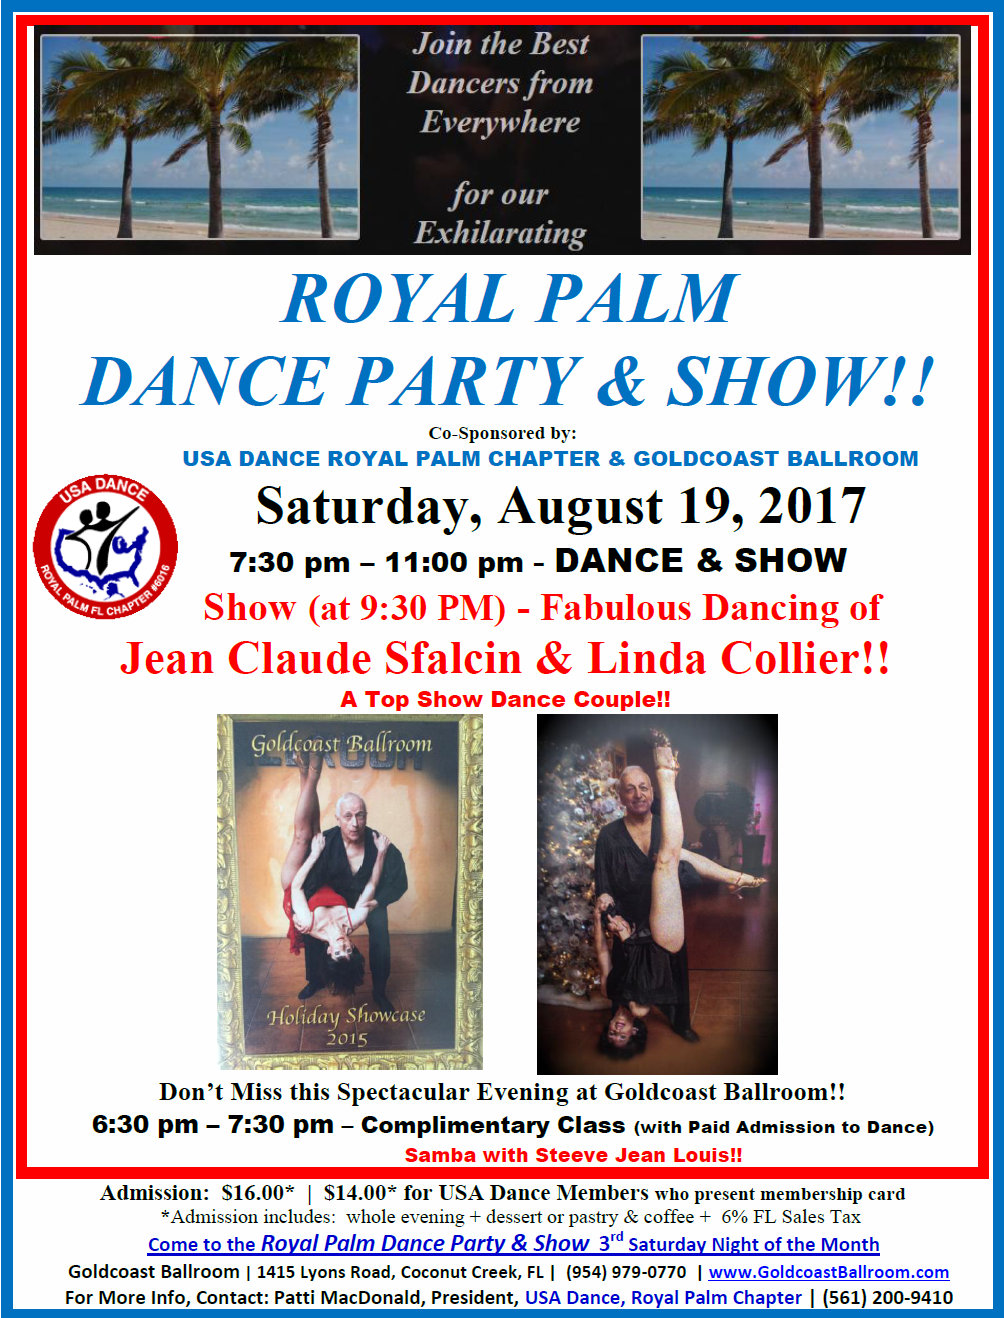 CLICK HERE to Download Flyer: August 19, 2017 - Royal Palm Dance Party & Show Featuring Jean Claude Sfalcin & Linda Collier!